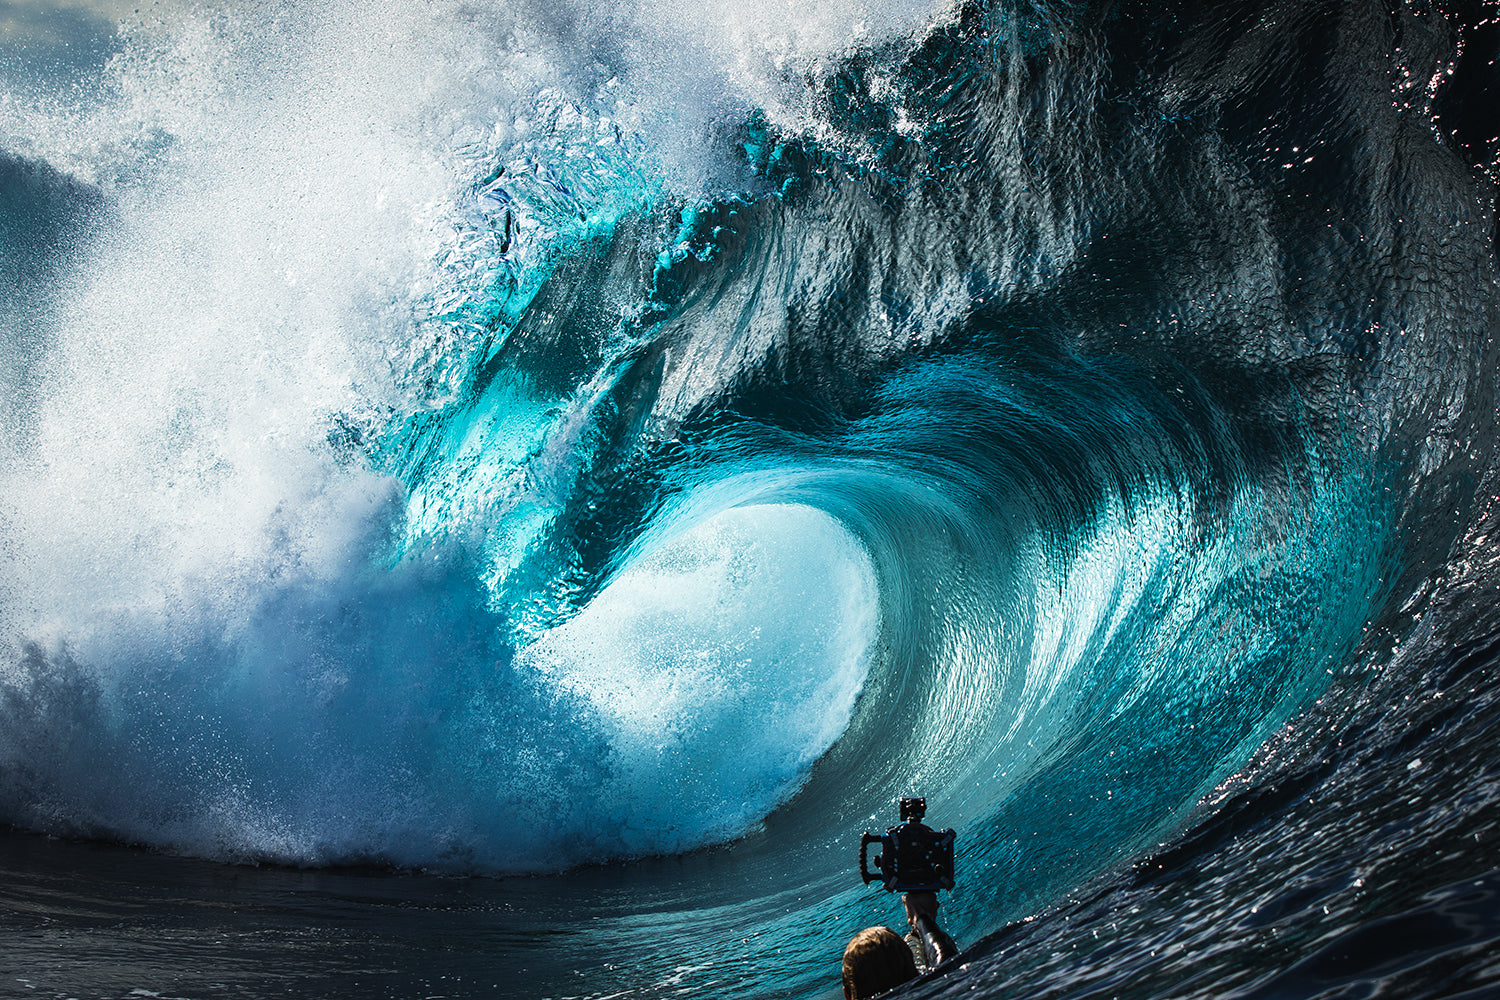 Phil Thurston; ocean surf art photographer